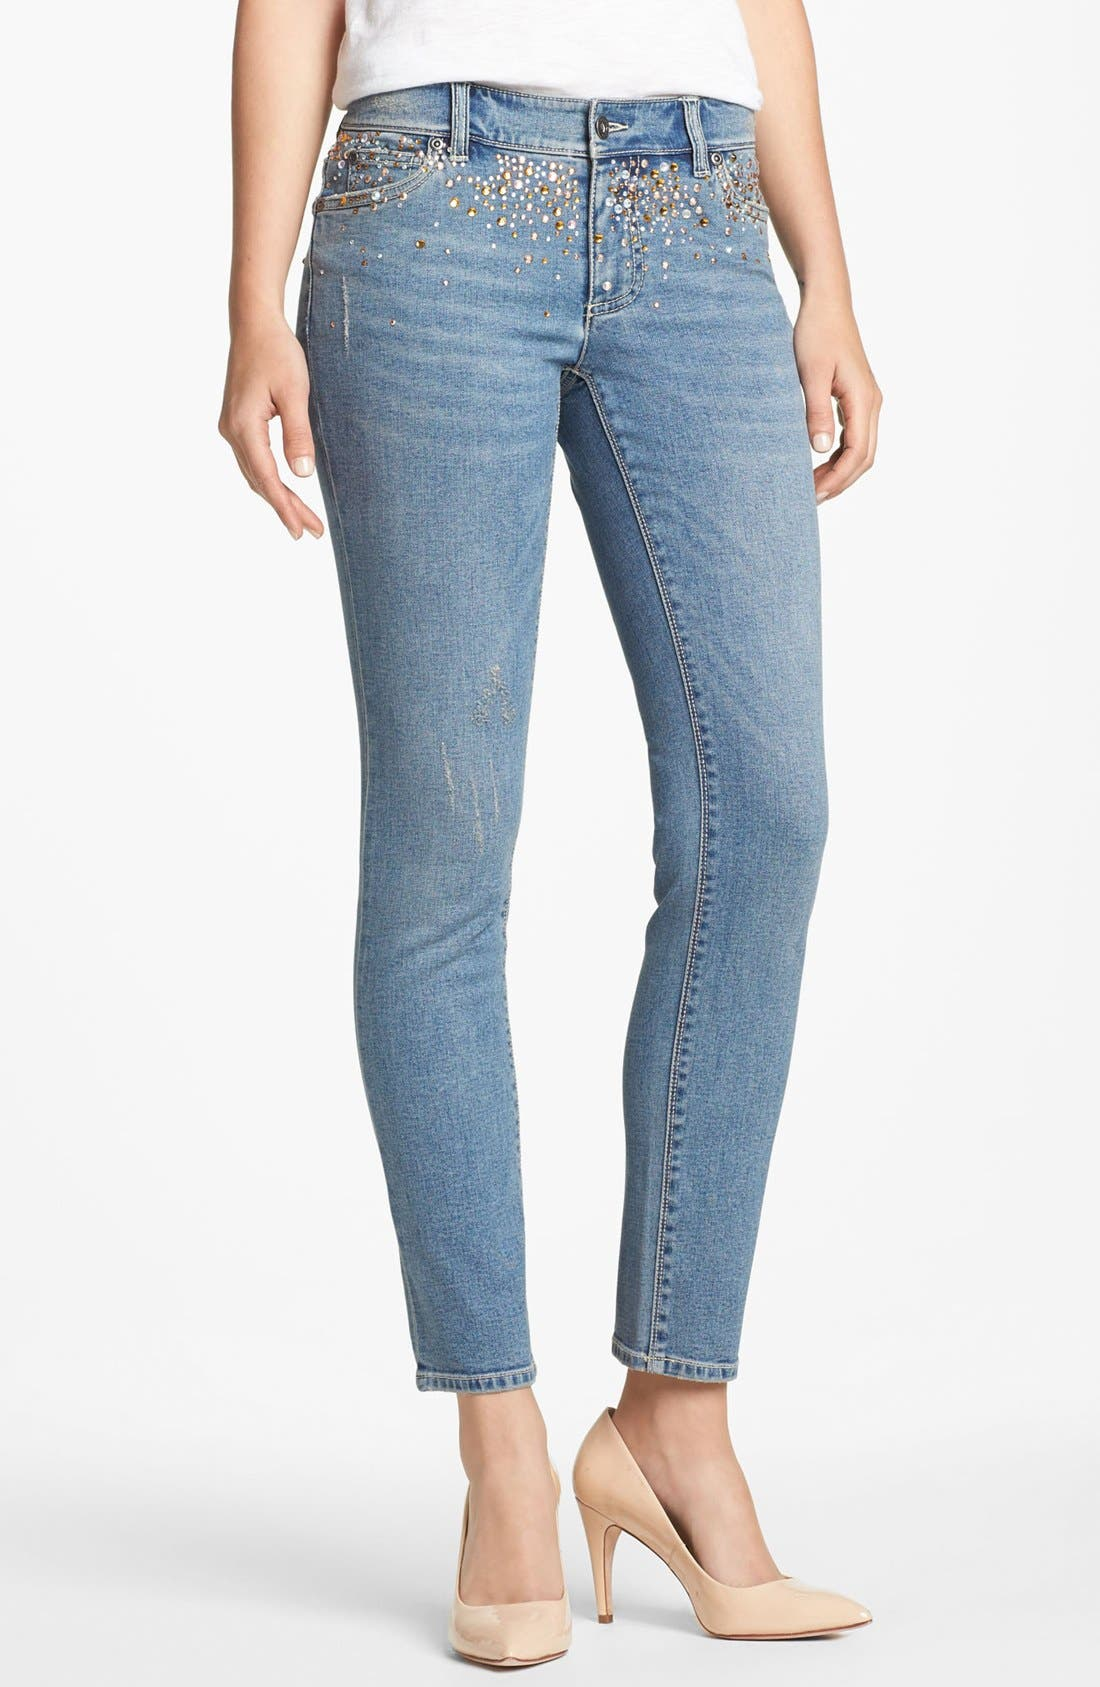 Main Image - Two by Vince Camuto Embellished Distressed Straight Leg Jeans (Petite)